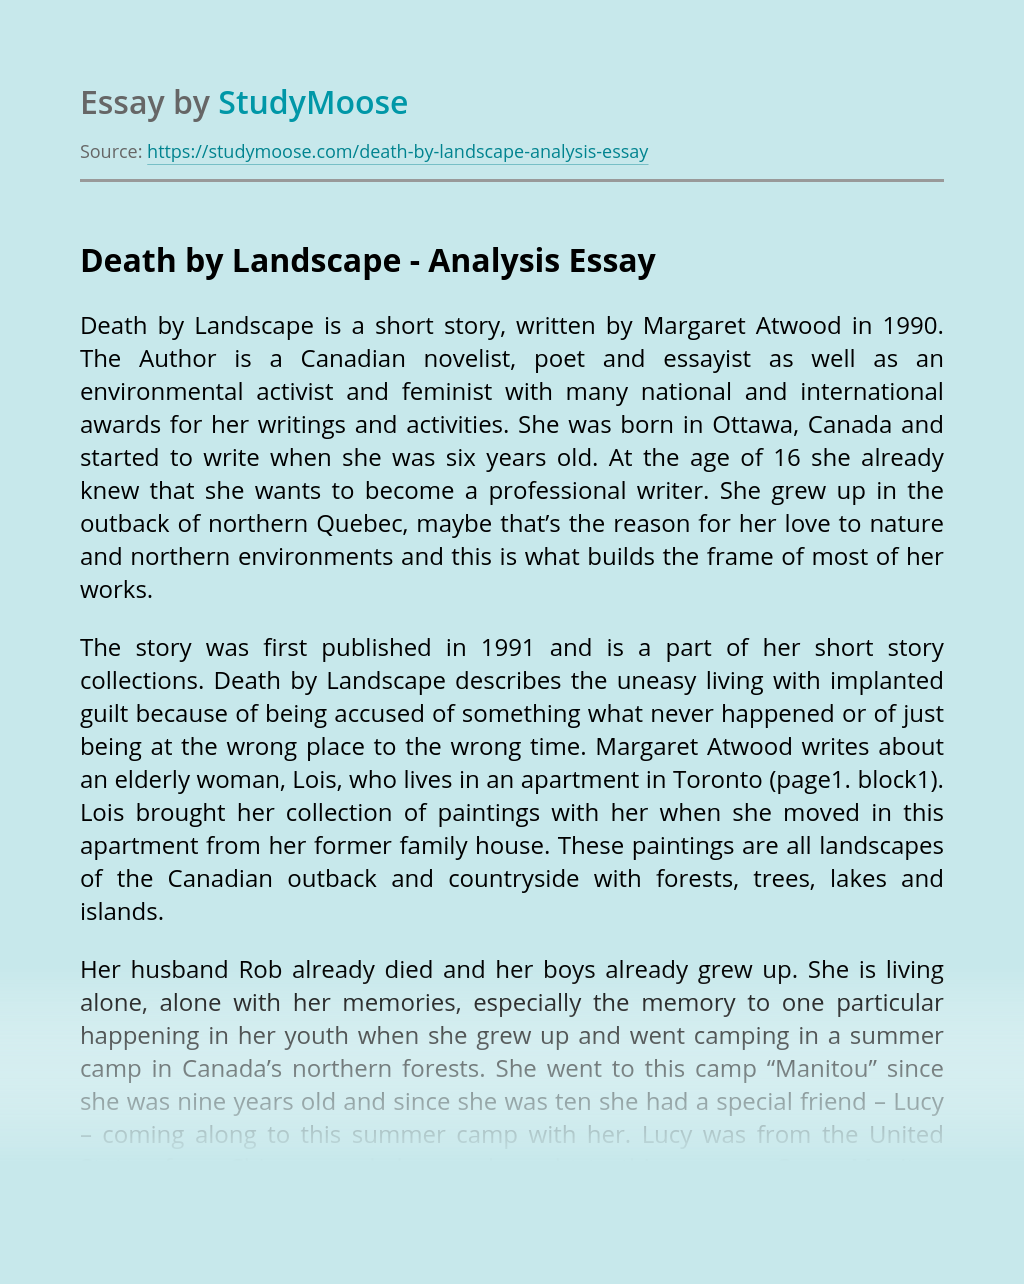 Death by Landscape - Analysis